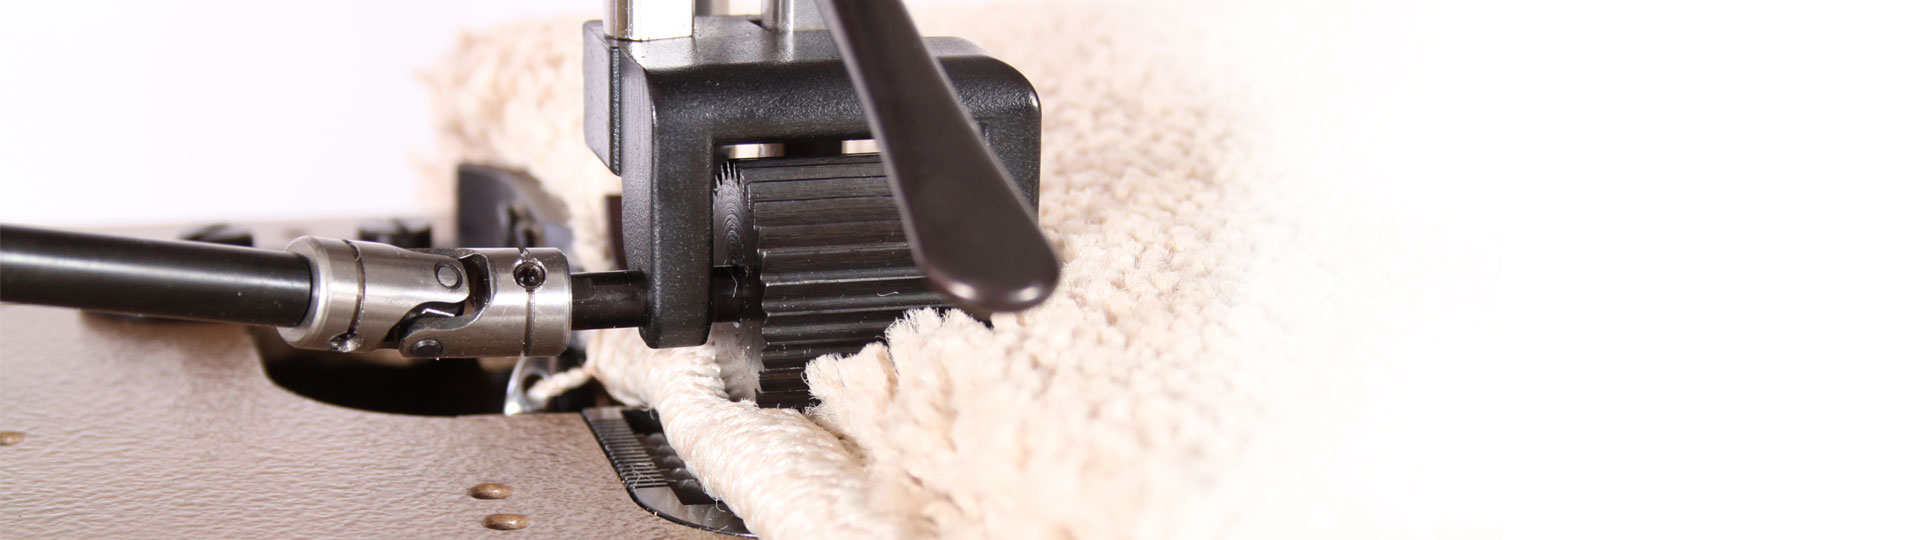 812-RP-carpet edging machine